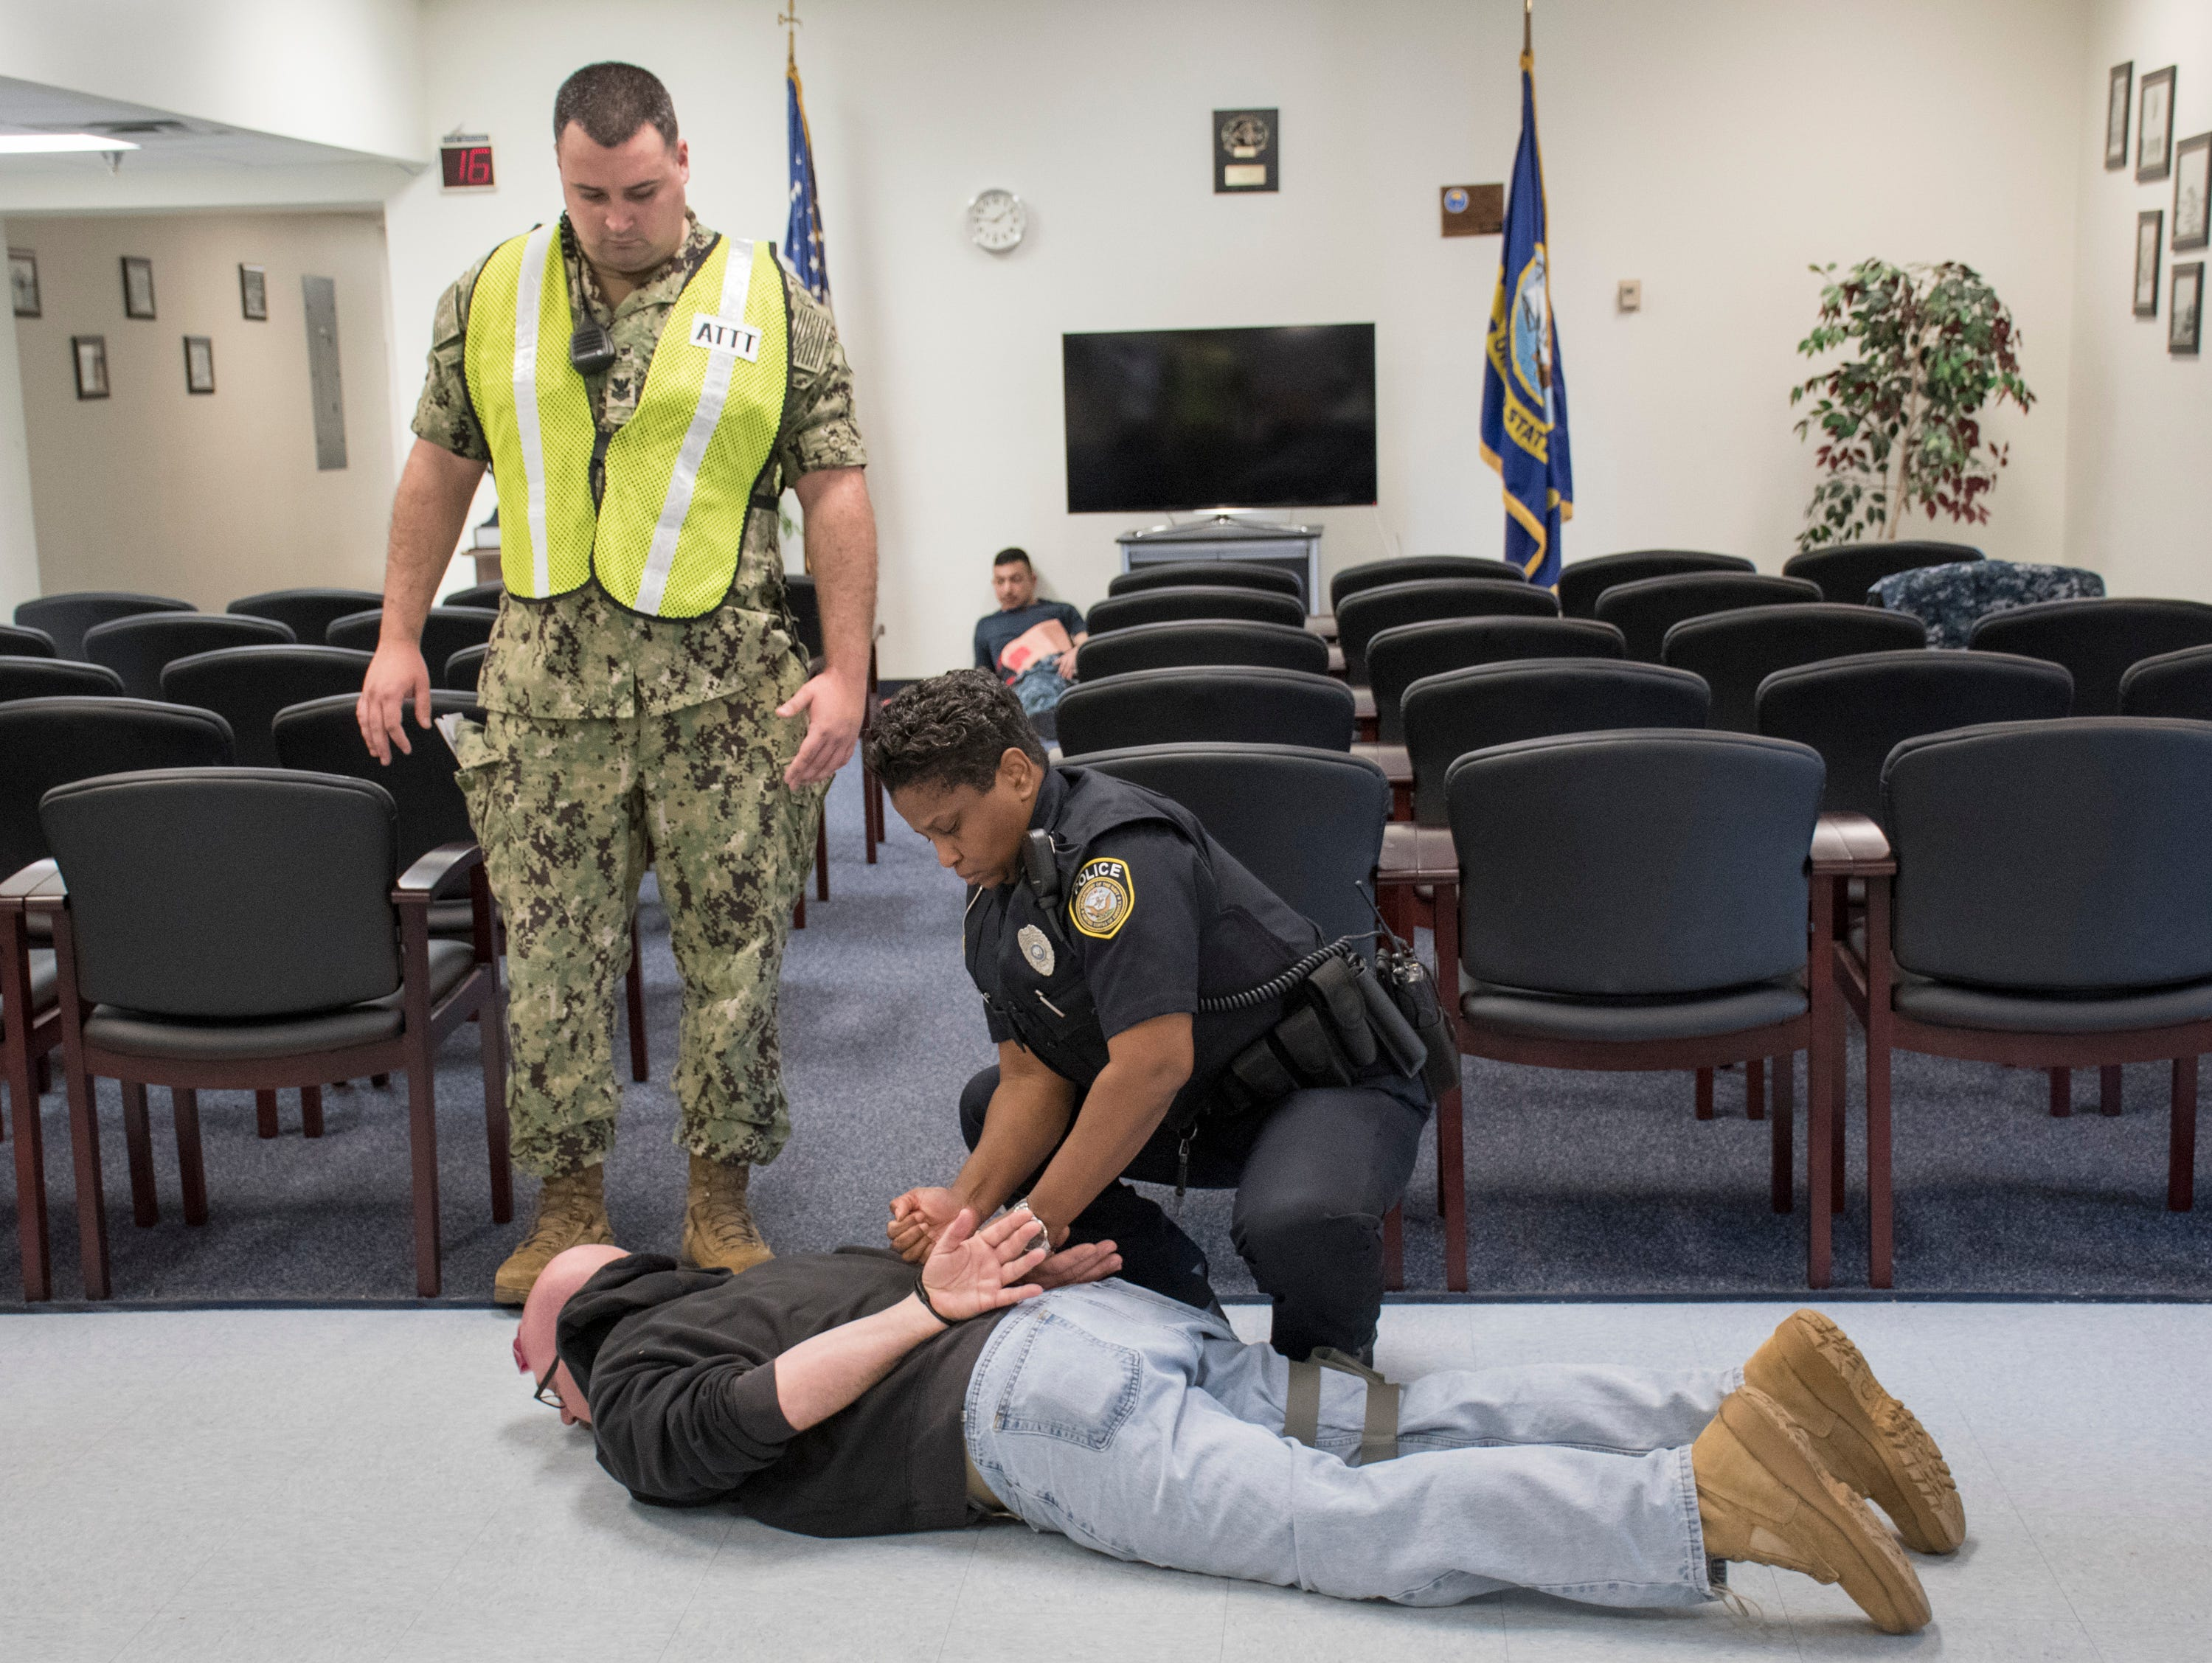 NAS Pensacola Police Officer Sophia Barnes handcuffs Senior Chief Aviation Structural Mechanic Pasquale Moreland, who is portraying an armed intruder, in the Personnel Support Detachment building during Exercise Solid Curtain-Citadel Shield, an annual security exercise is conducted at NAS Pensacola on Tuesday, February 4, 2019.